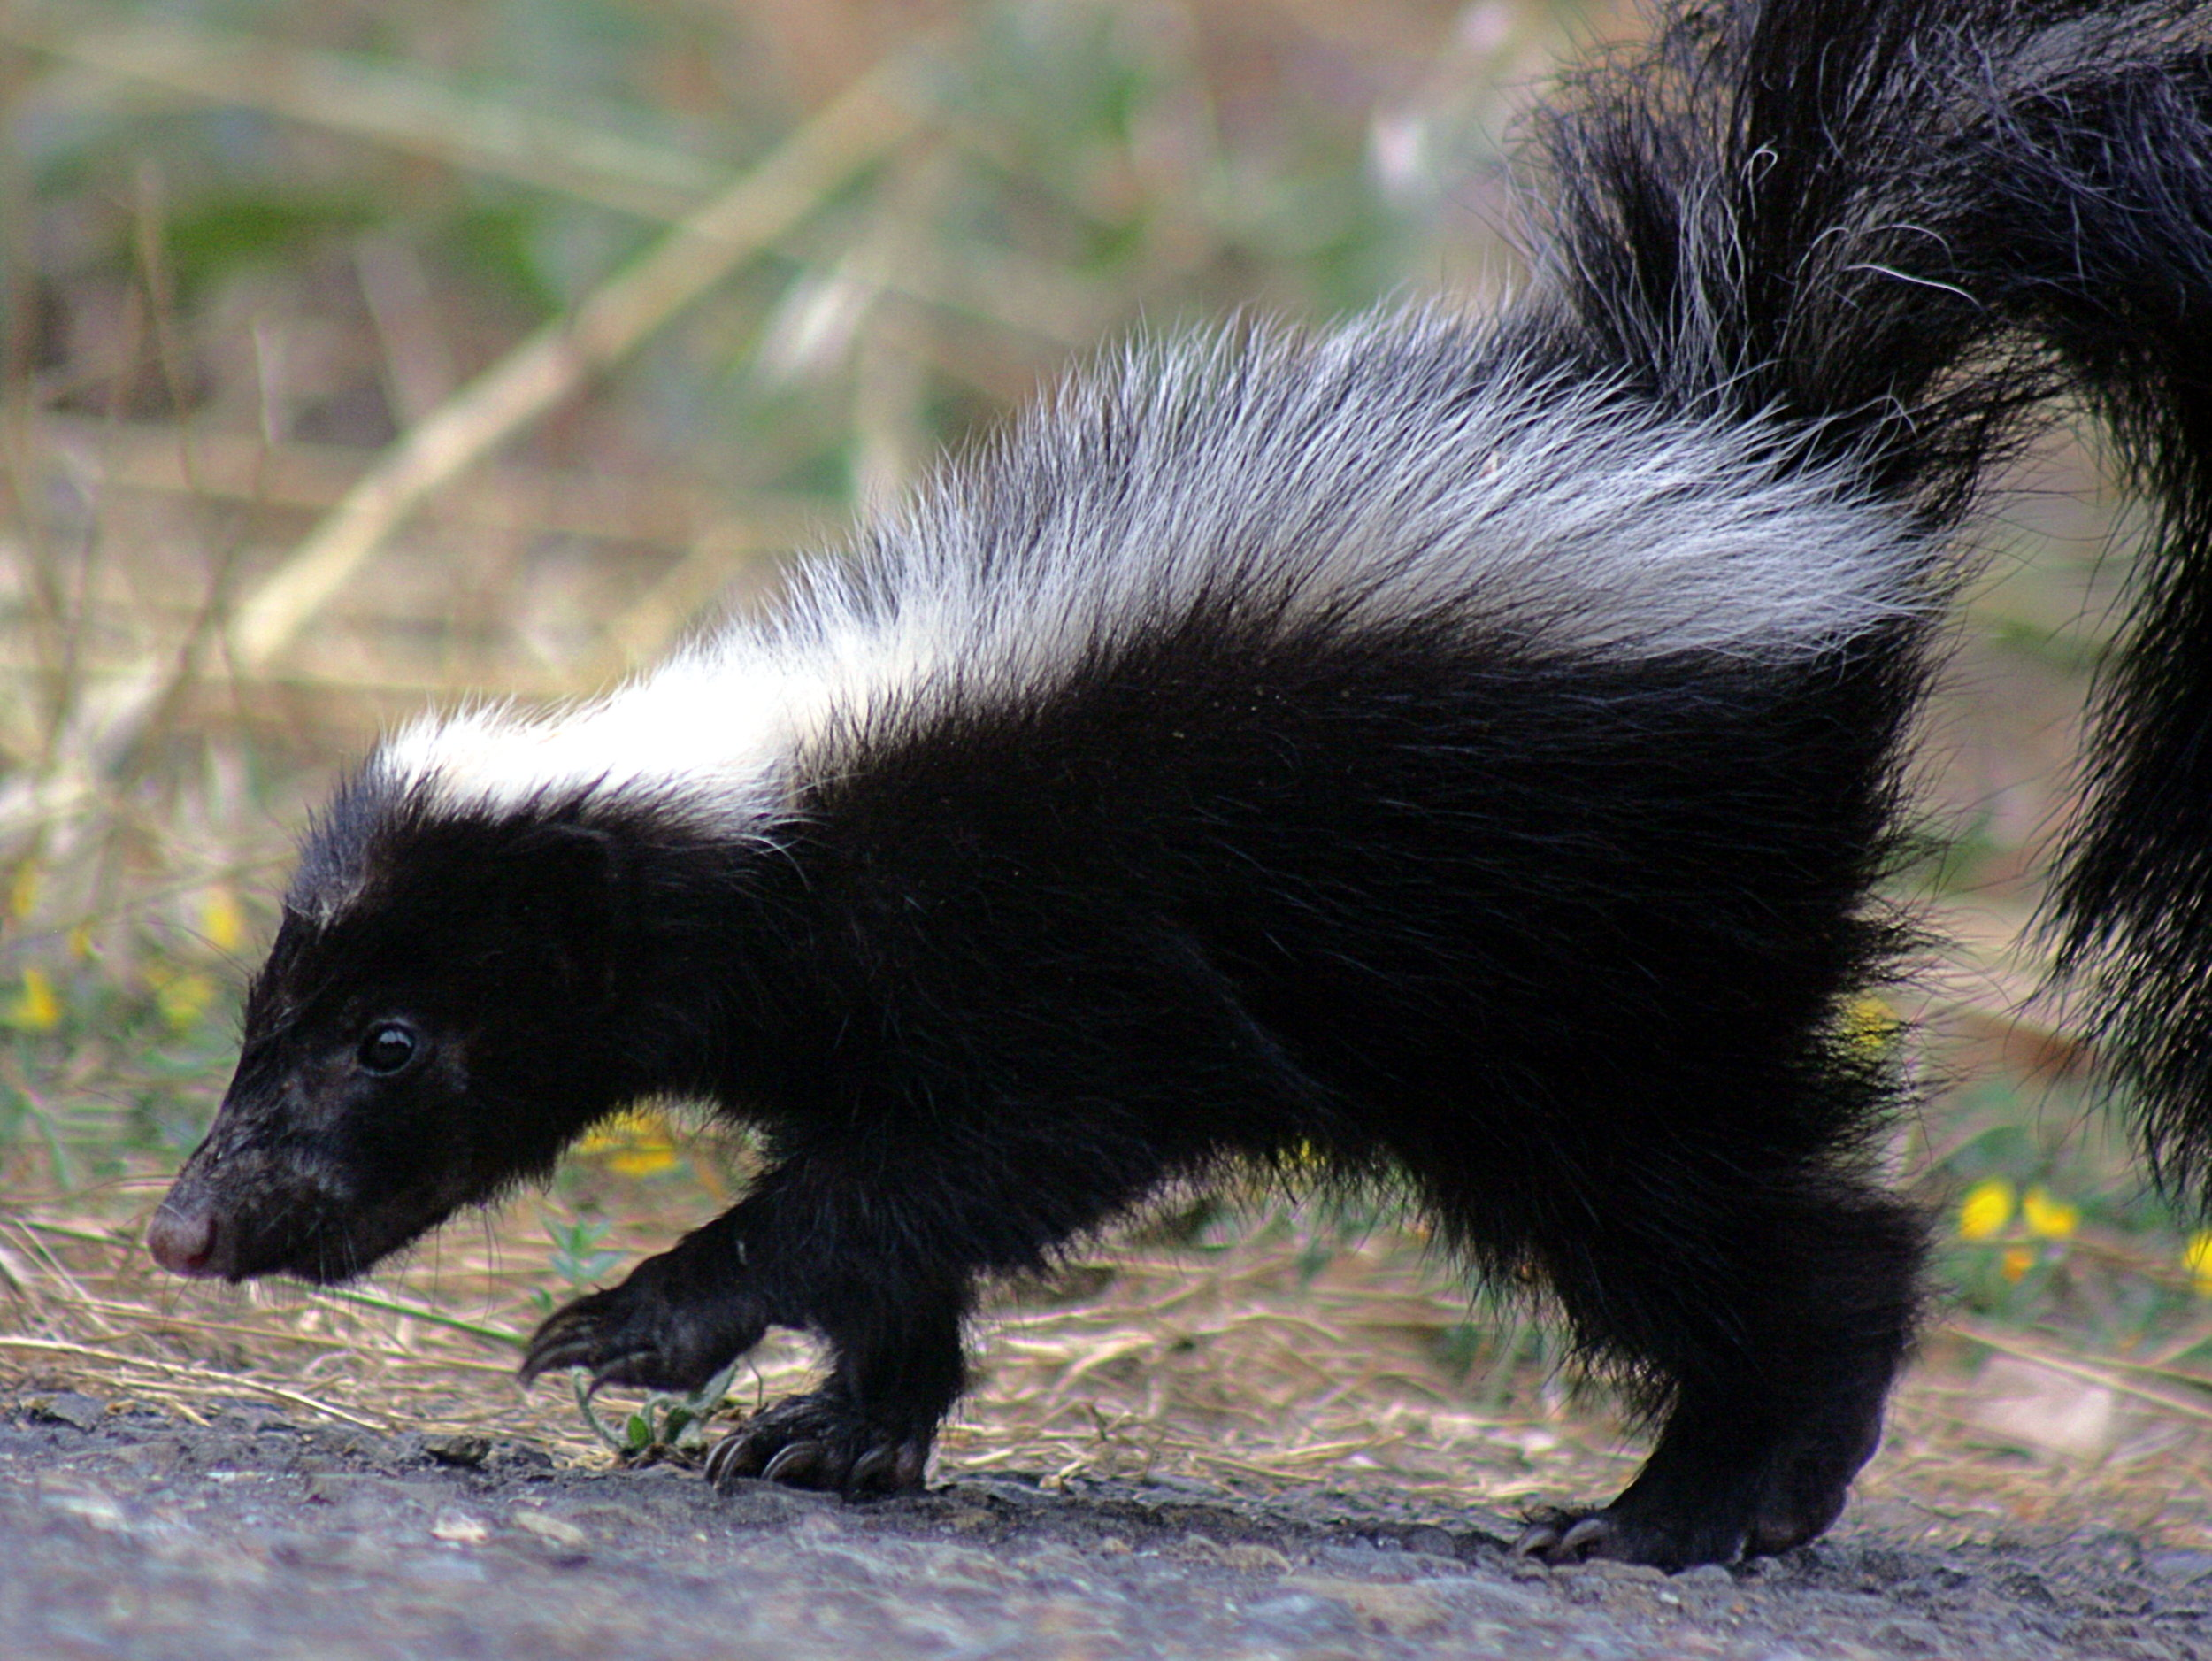 Eggs are one of striped skunks' favorite snacks. Photo by TJ Gehling